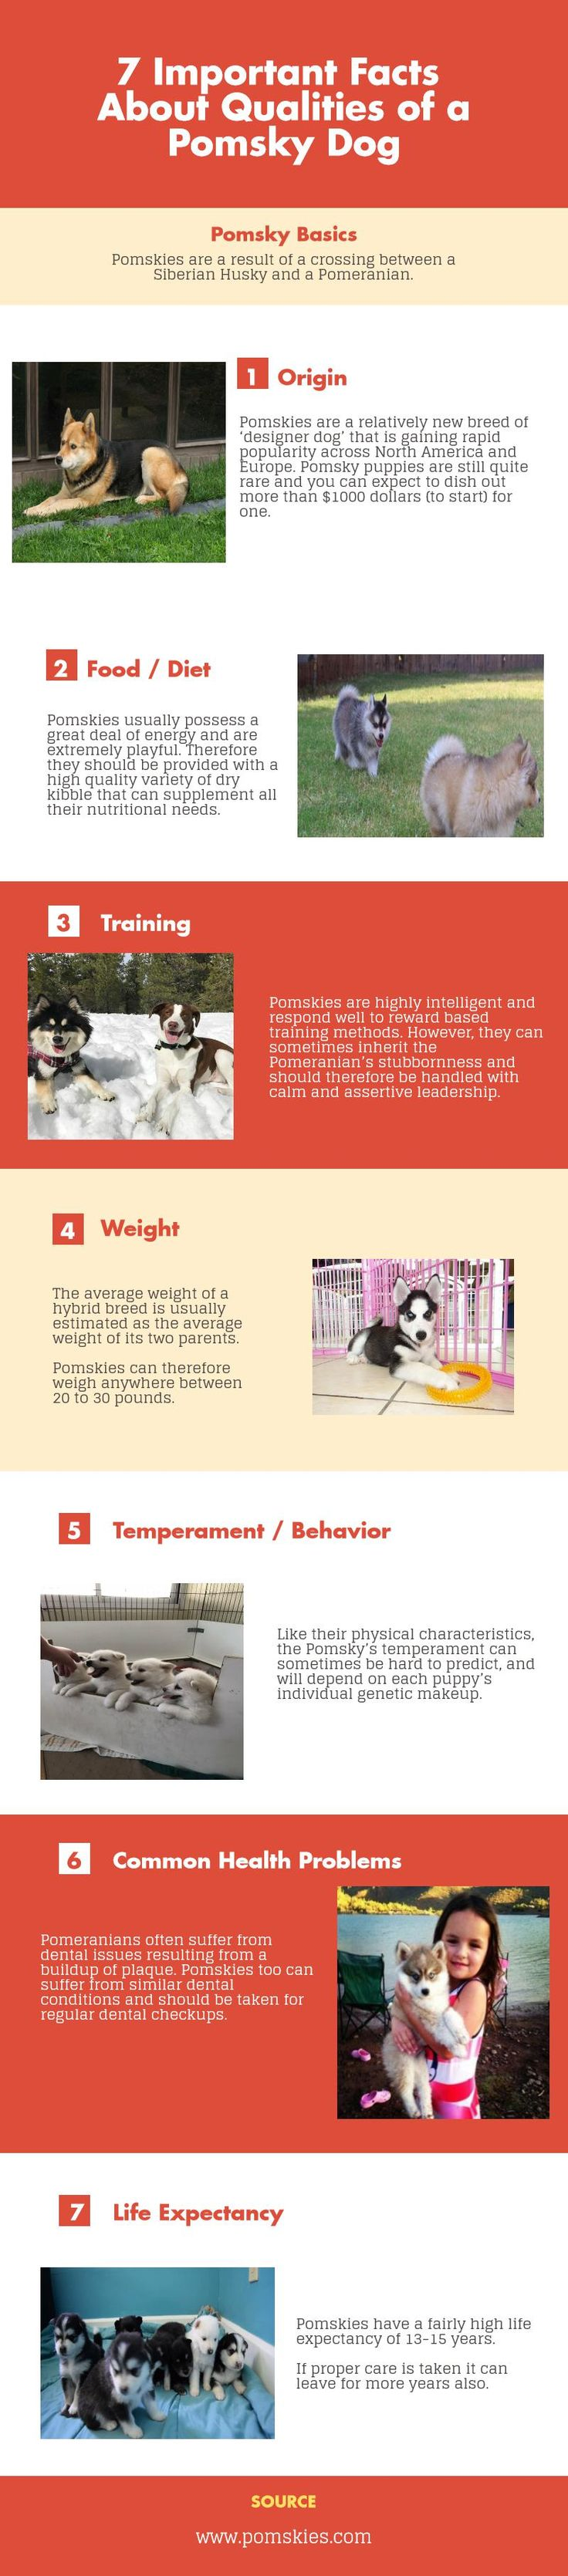 7 Important Facts About Qualities of a #Pomsky Dog  Pomskies #dogs are designer dog breed. Pomsky Dogs are famous in Europe and America. Pomsky Dogs are highly intelligent and respond well if training provided. Life of a Pomsky dog is of around 13 to 15 Years approx.  http://www.pomskies.com/